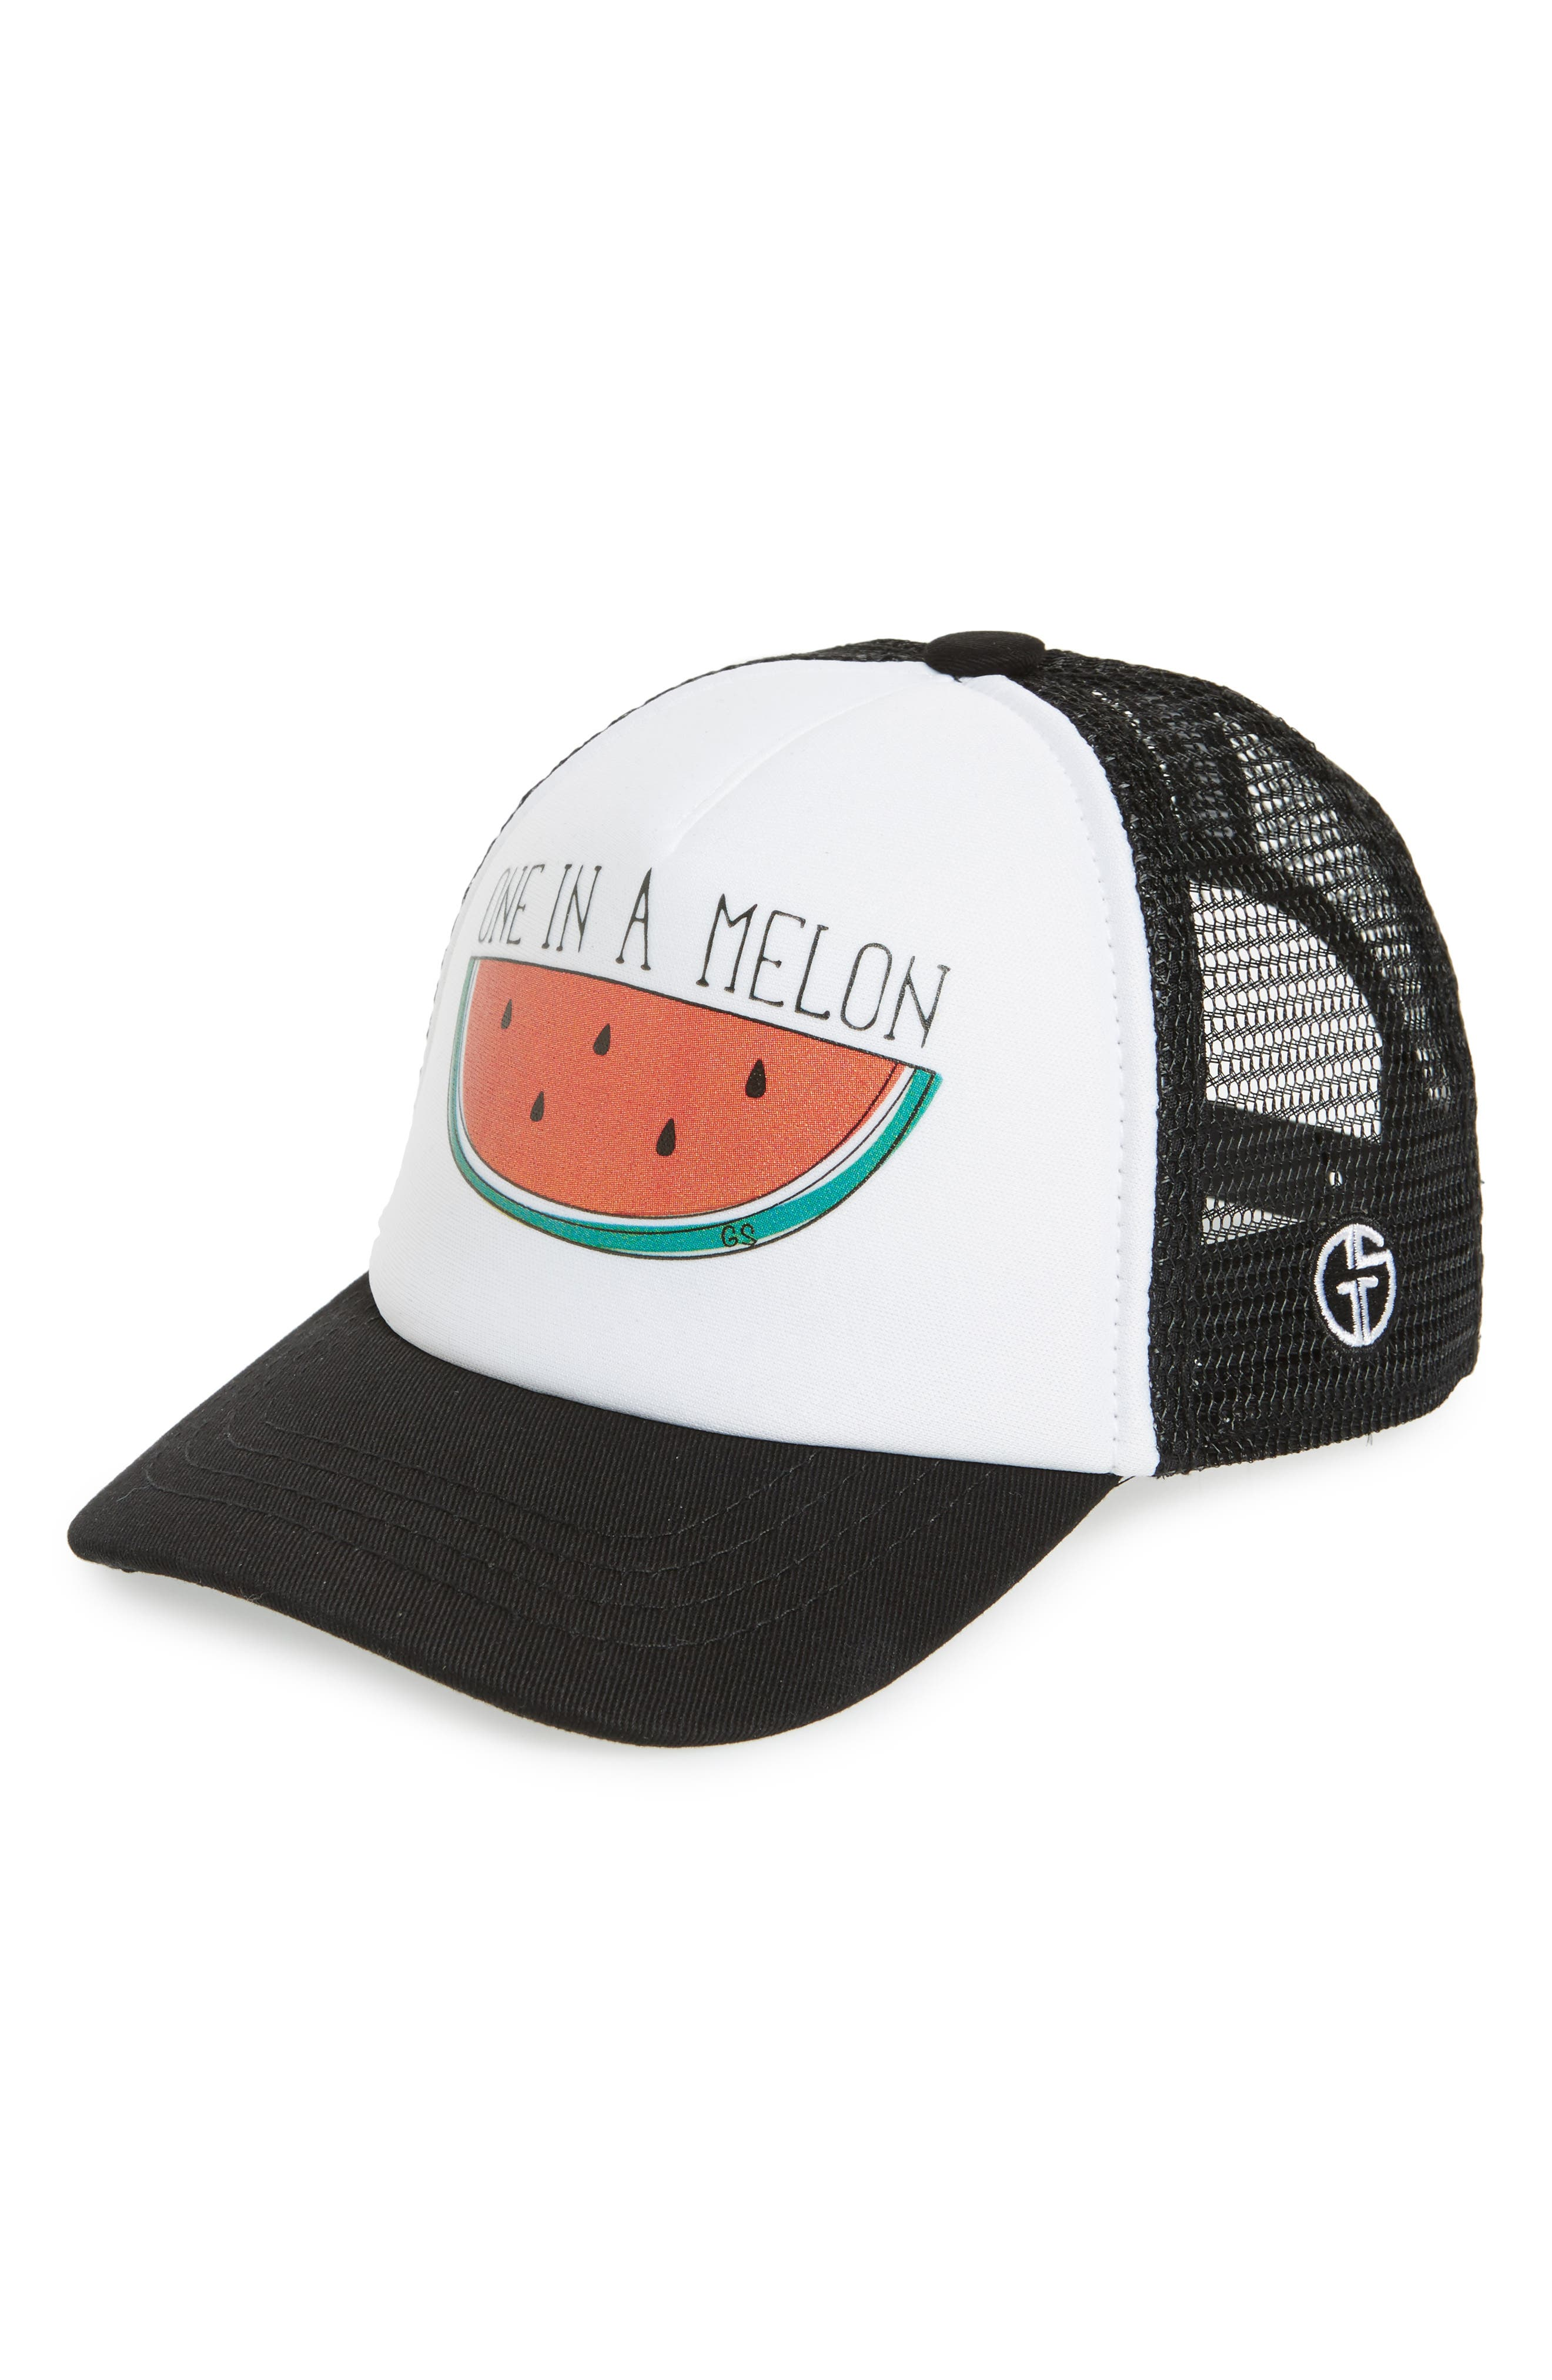 One in a Melon Trucker Hat,                         Main,                         color, BLACK/ WHITE